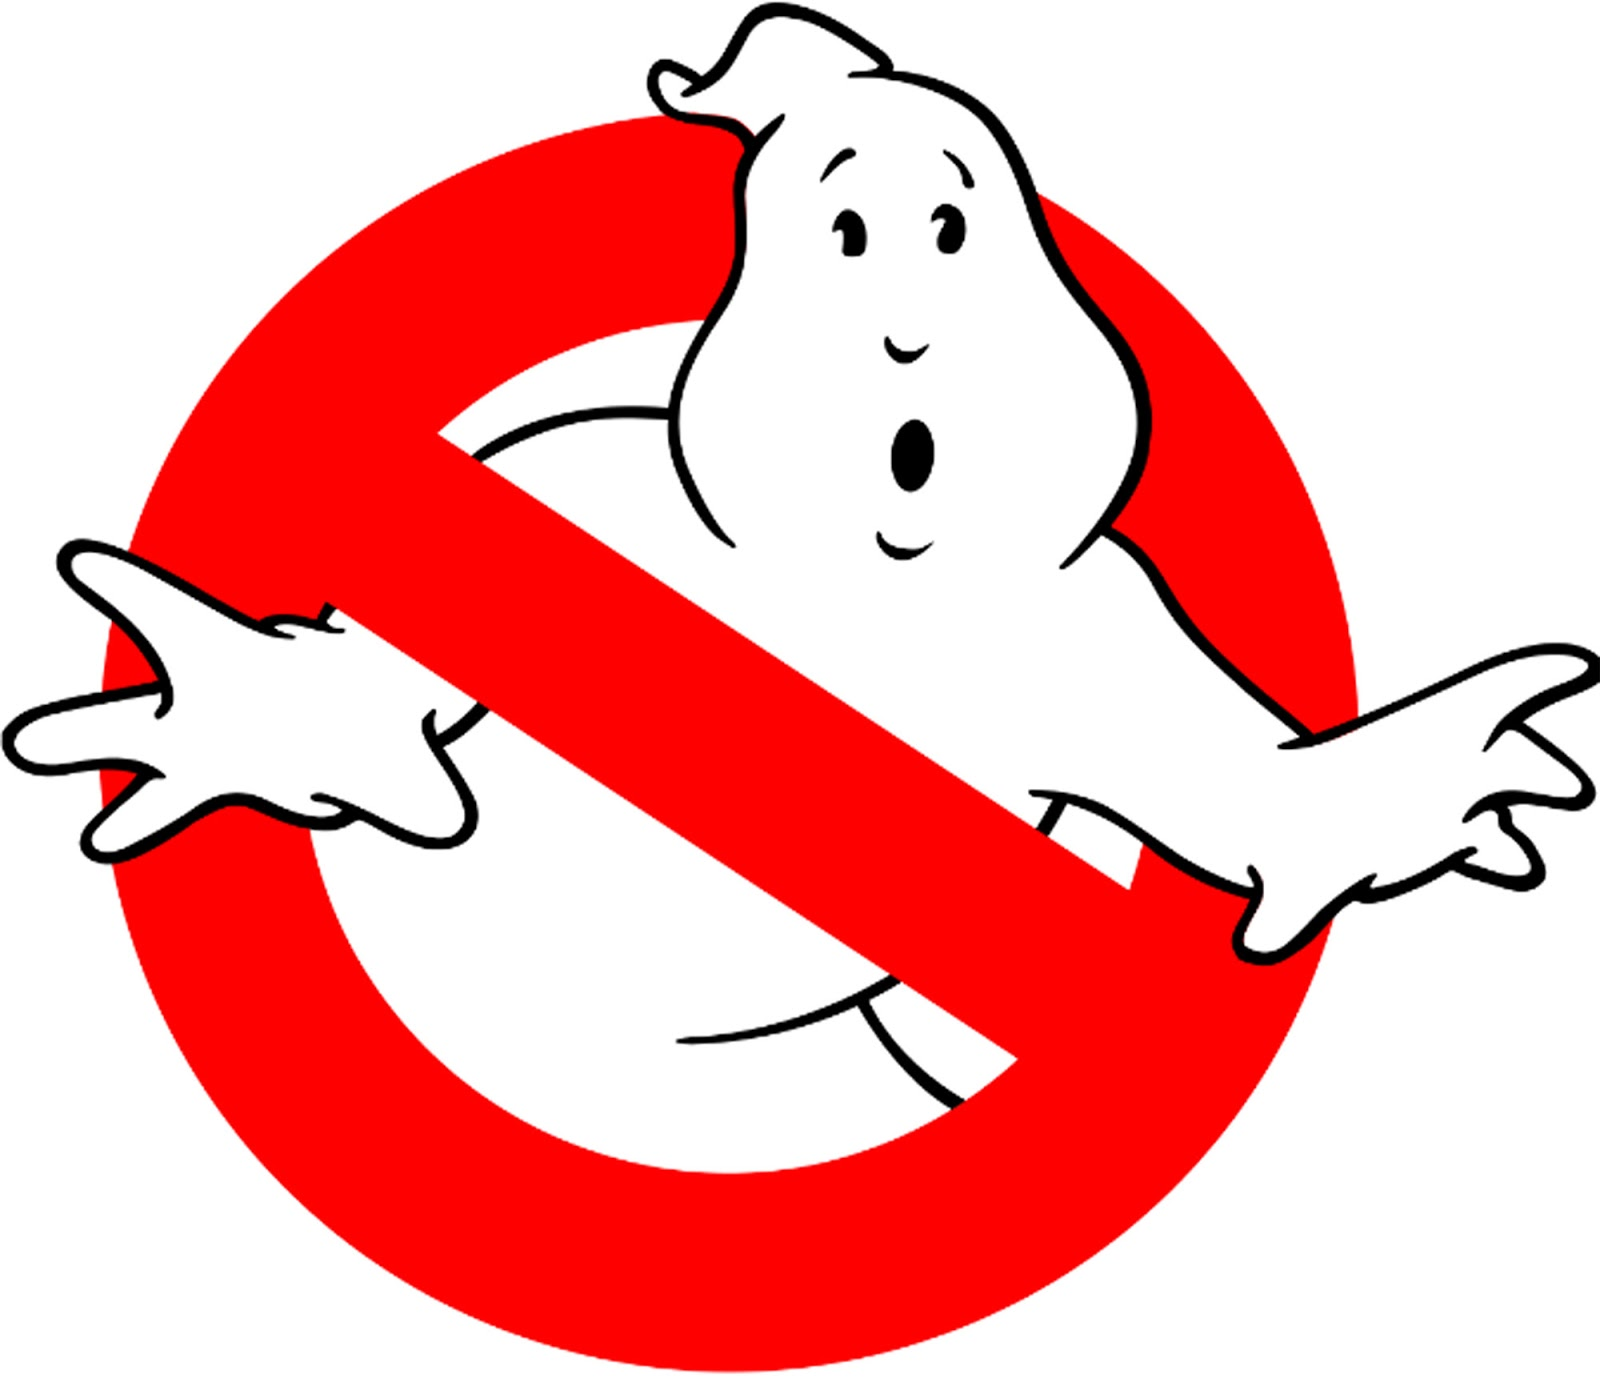 I found this image of the ghostbusters logo on wikipedia but you really could use any image the bolder and less detailed the image the better finished